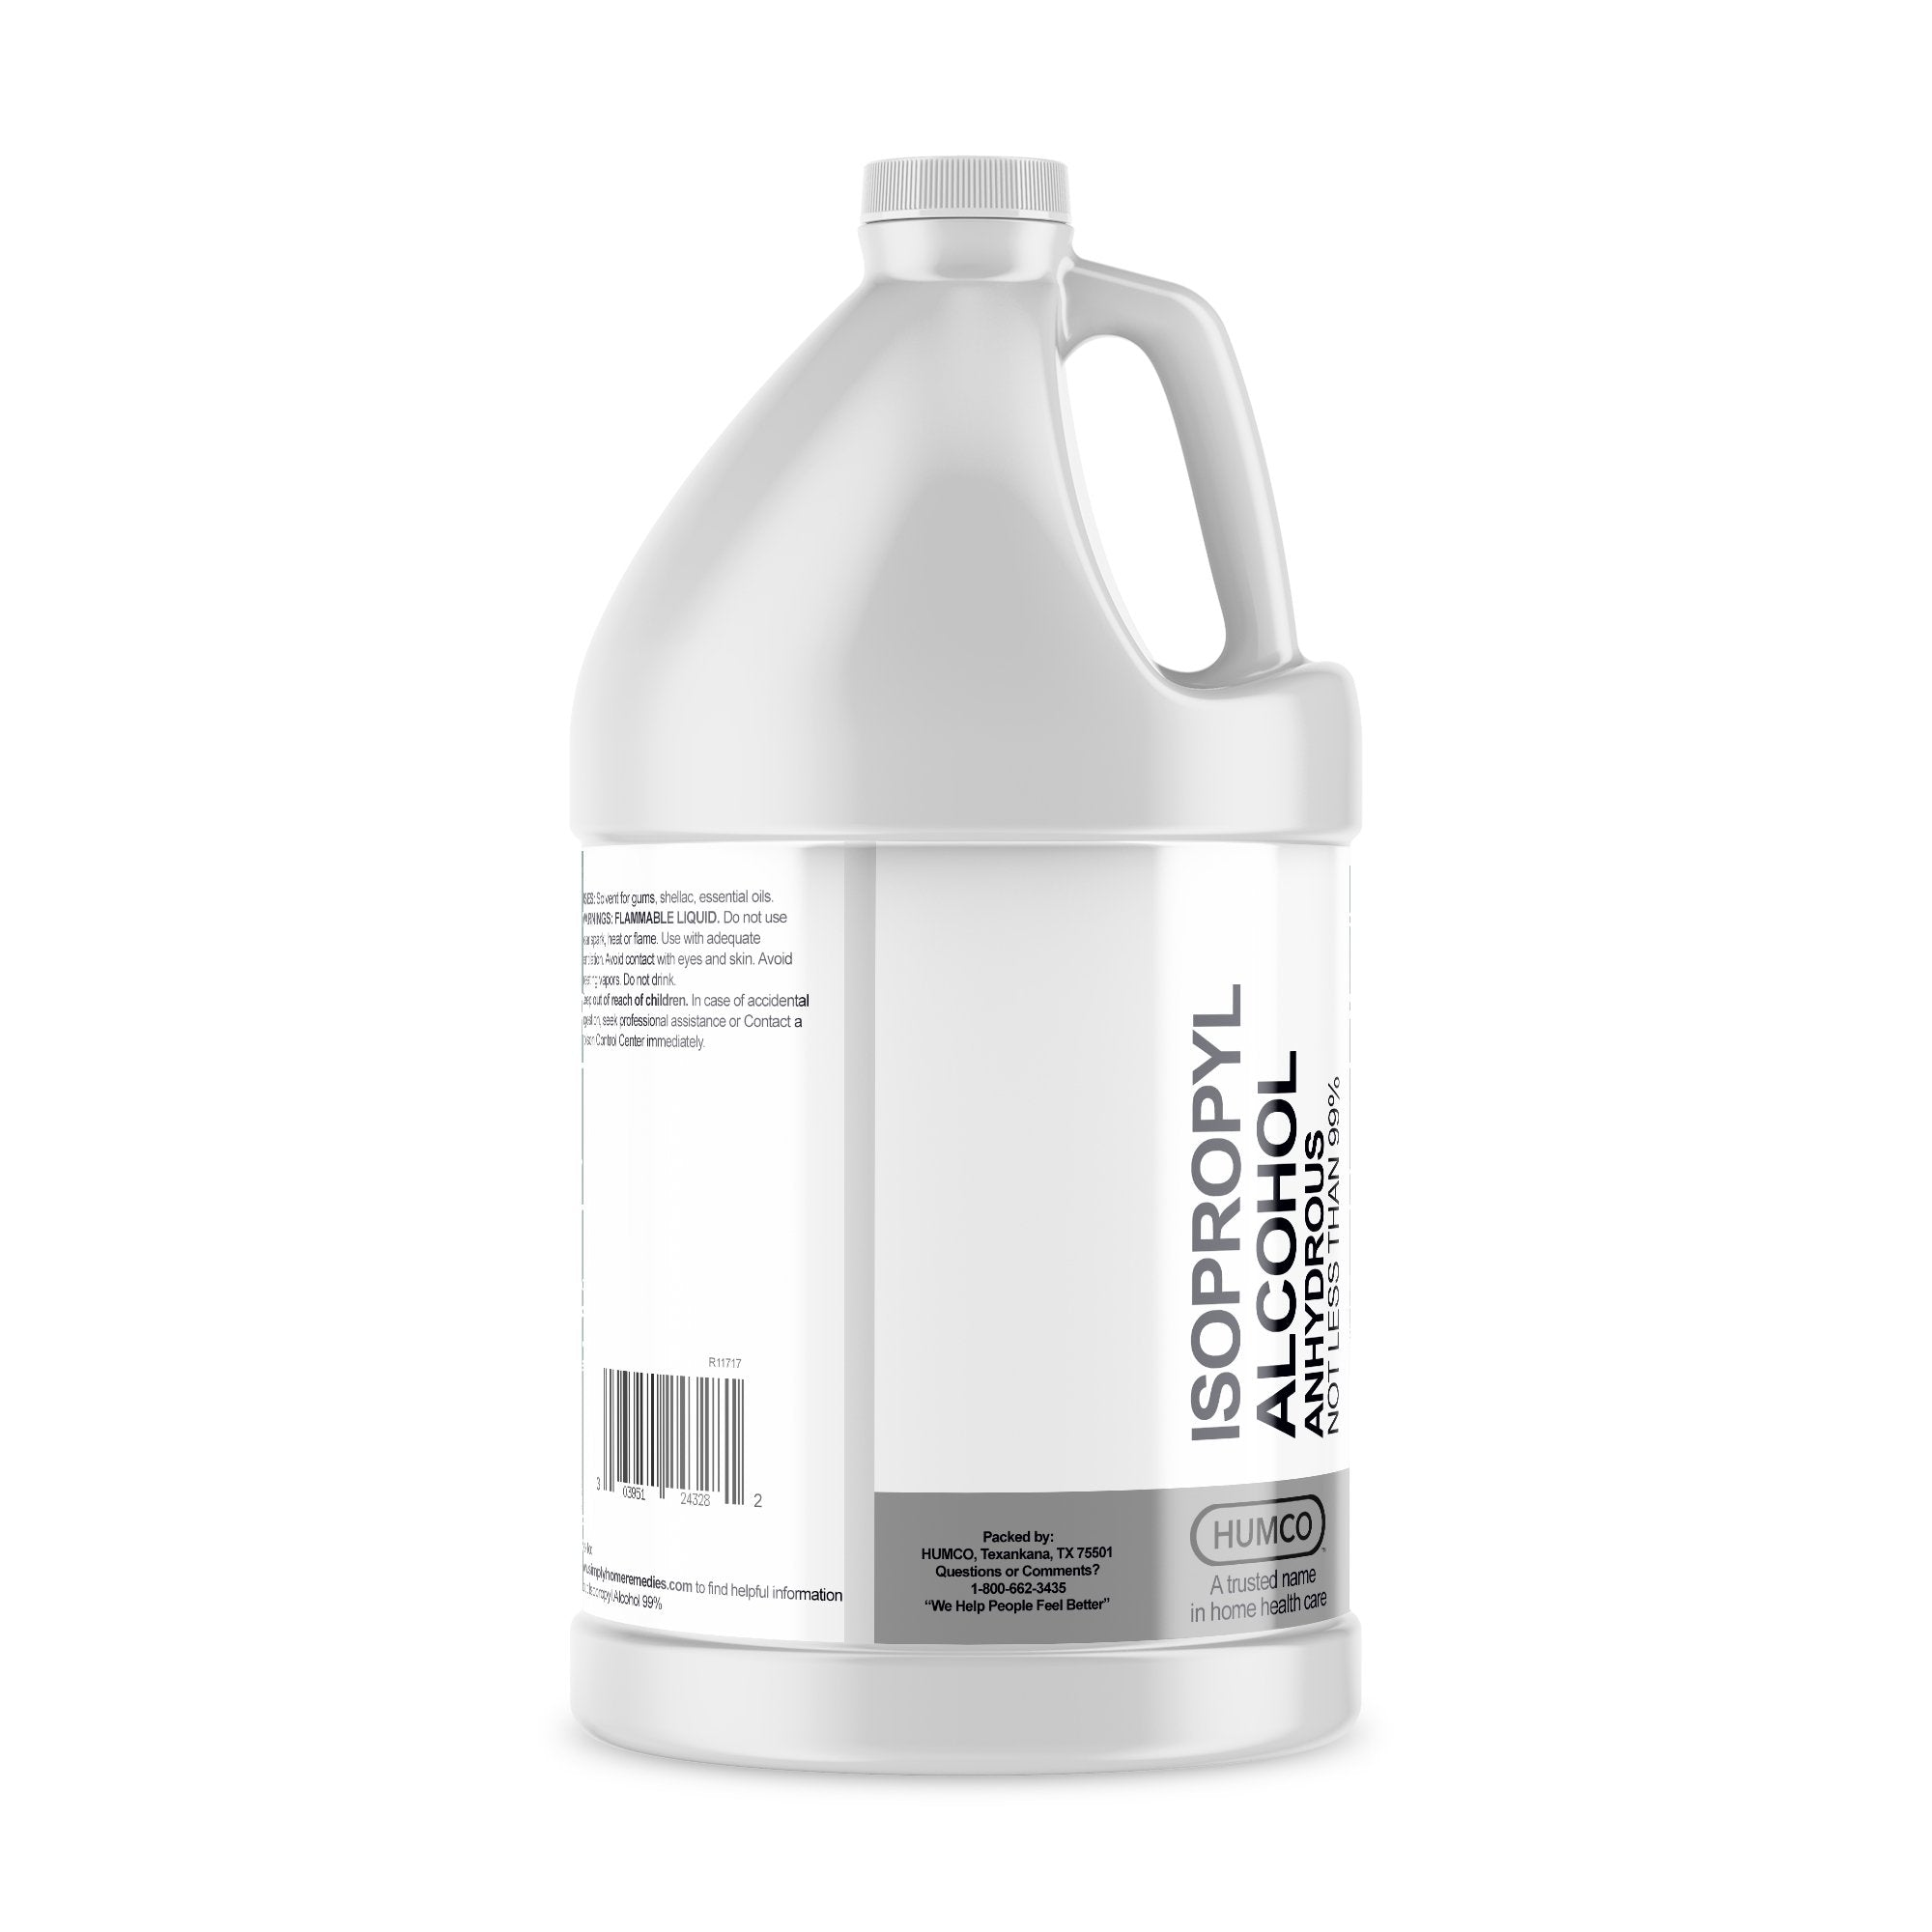 HUMCO Isopropyl Alcohol 99% 1 Gallon 50% OFF - Bayview Pharmacy